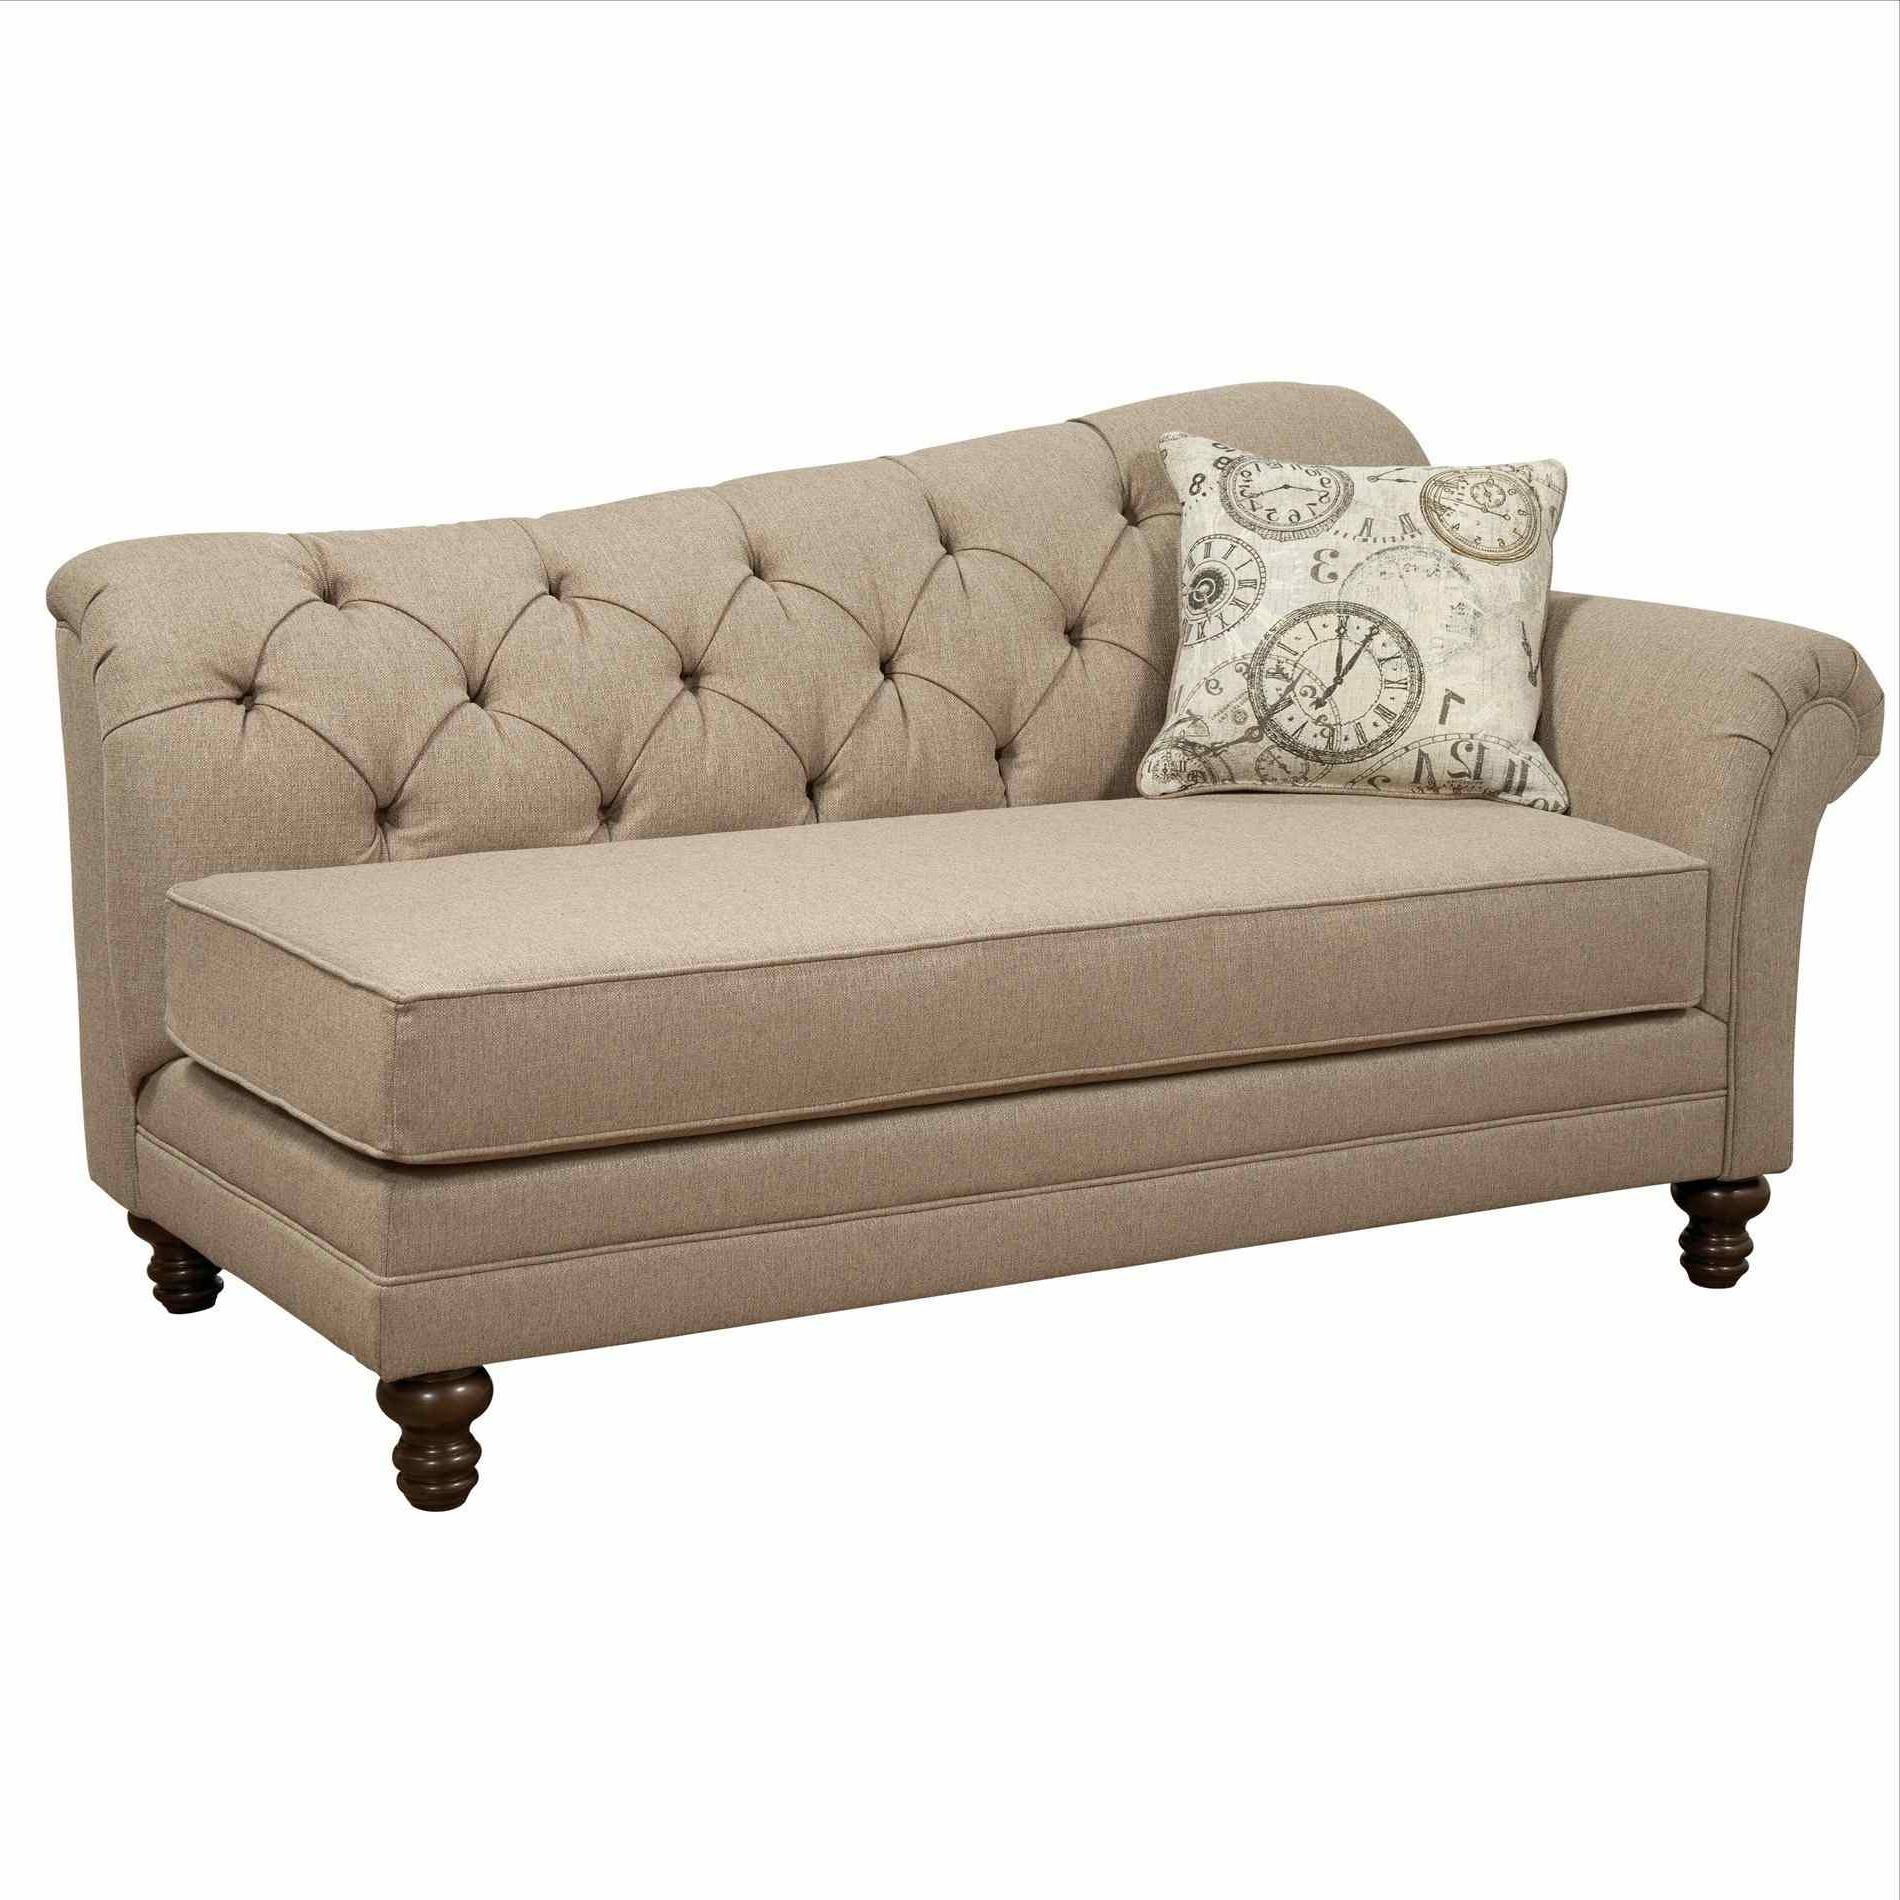 Old Fashioned Sofas With Most Popular Sofa : Old Fashioned Sofa Sofas (View 9 of 15)